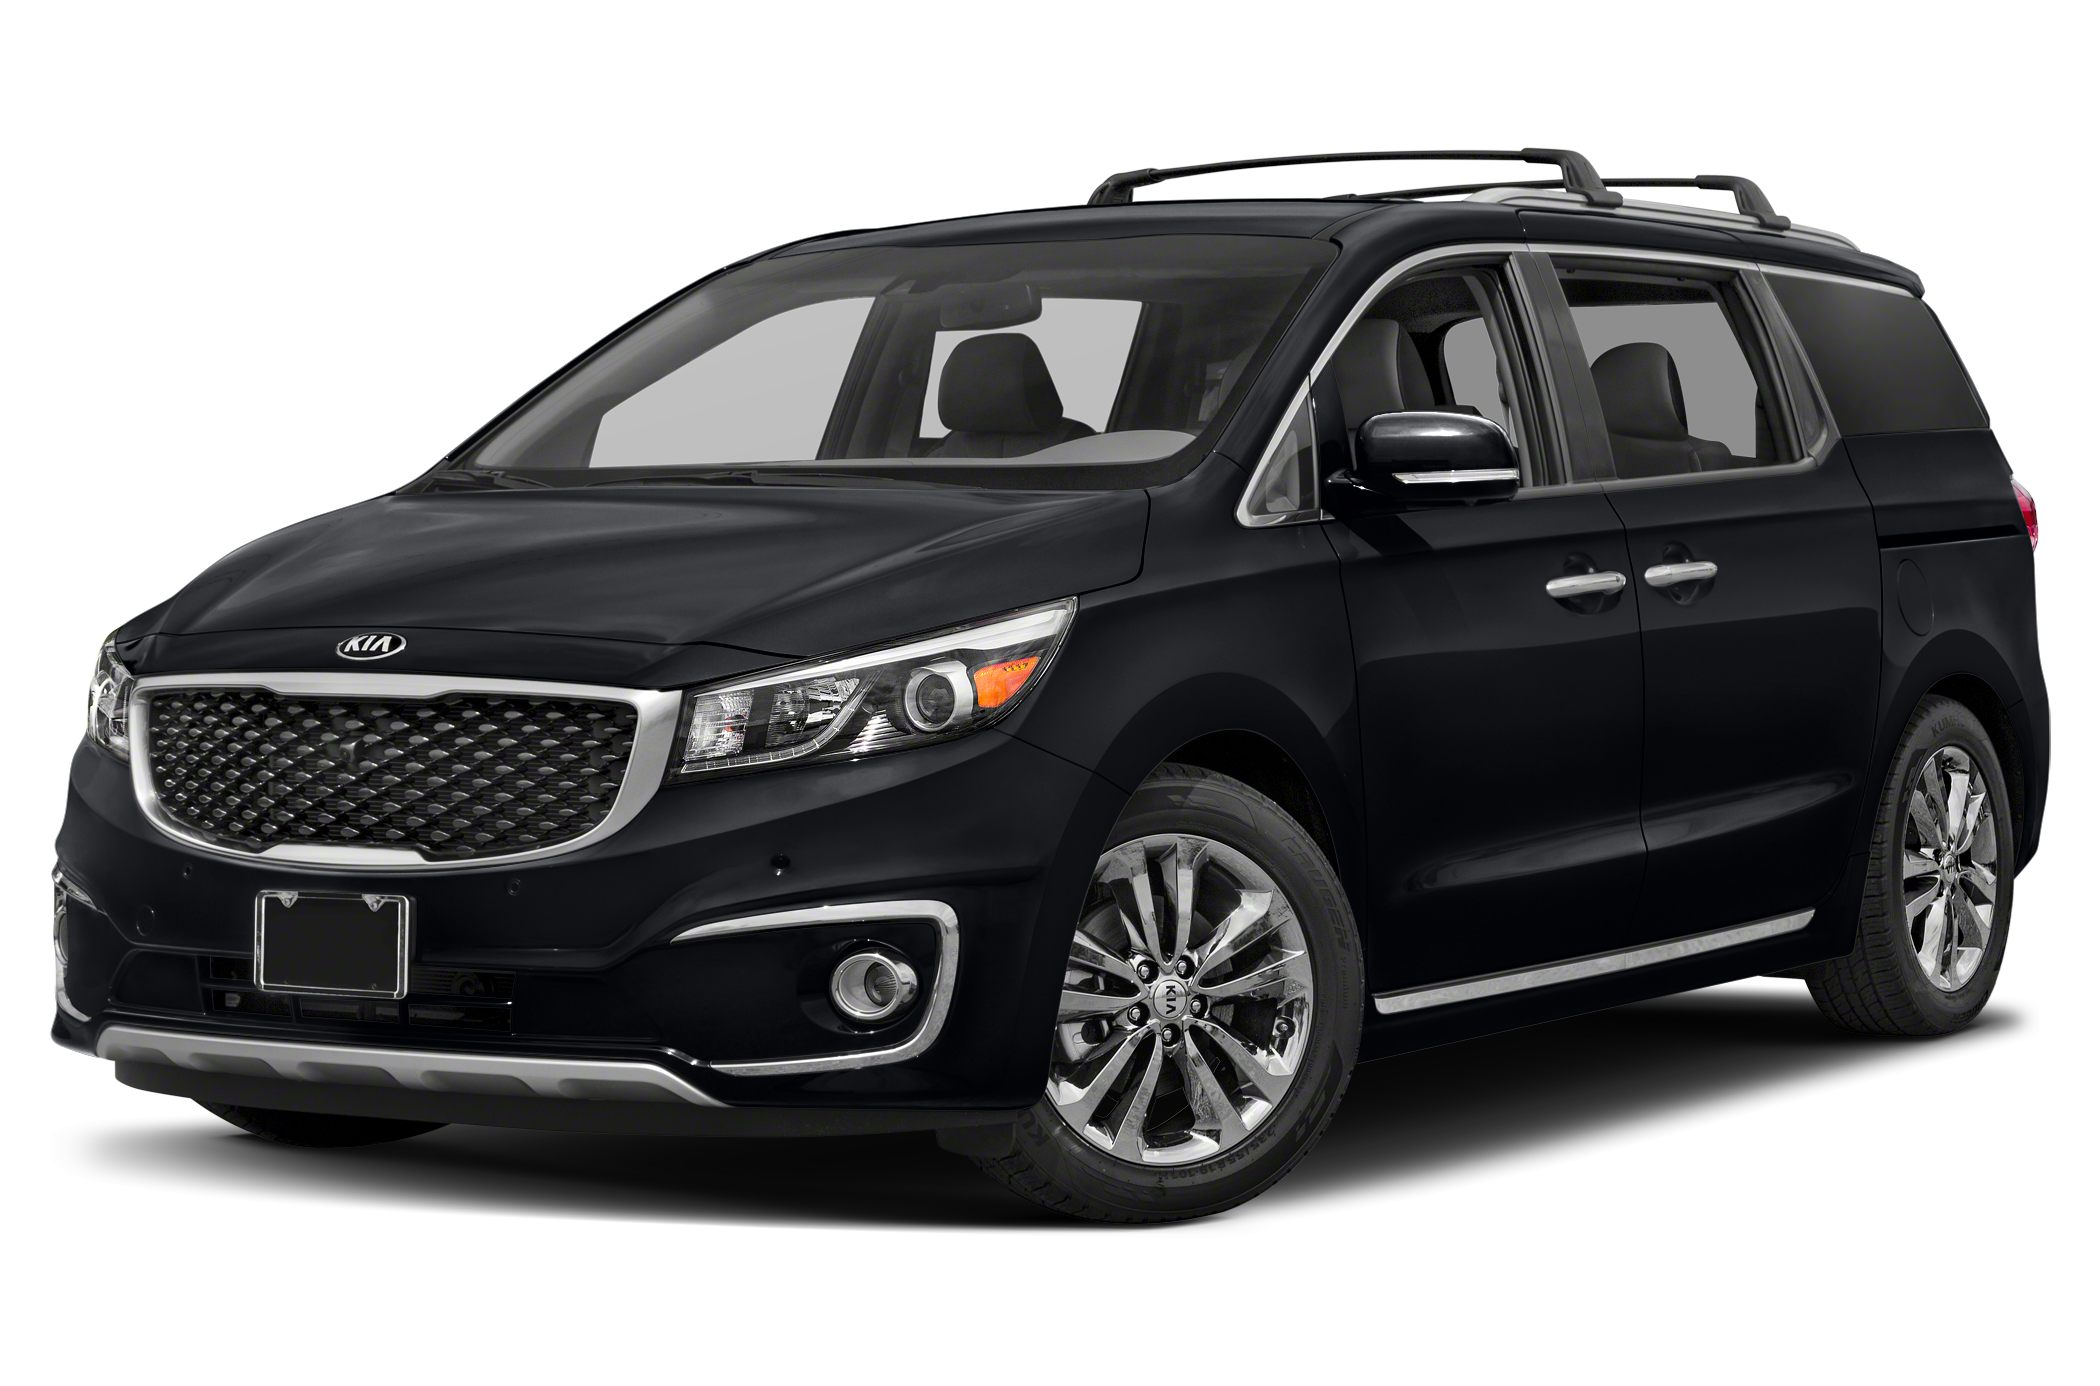 new 2016 kia sedona sxl scarborough scarboro kia. Black Bedroom Furniture Sets. Home Design Ideas